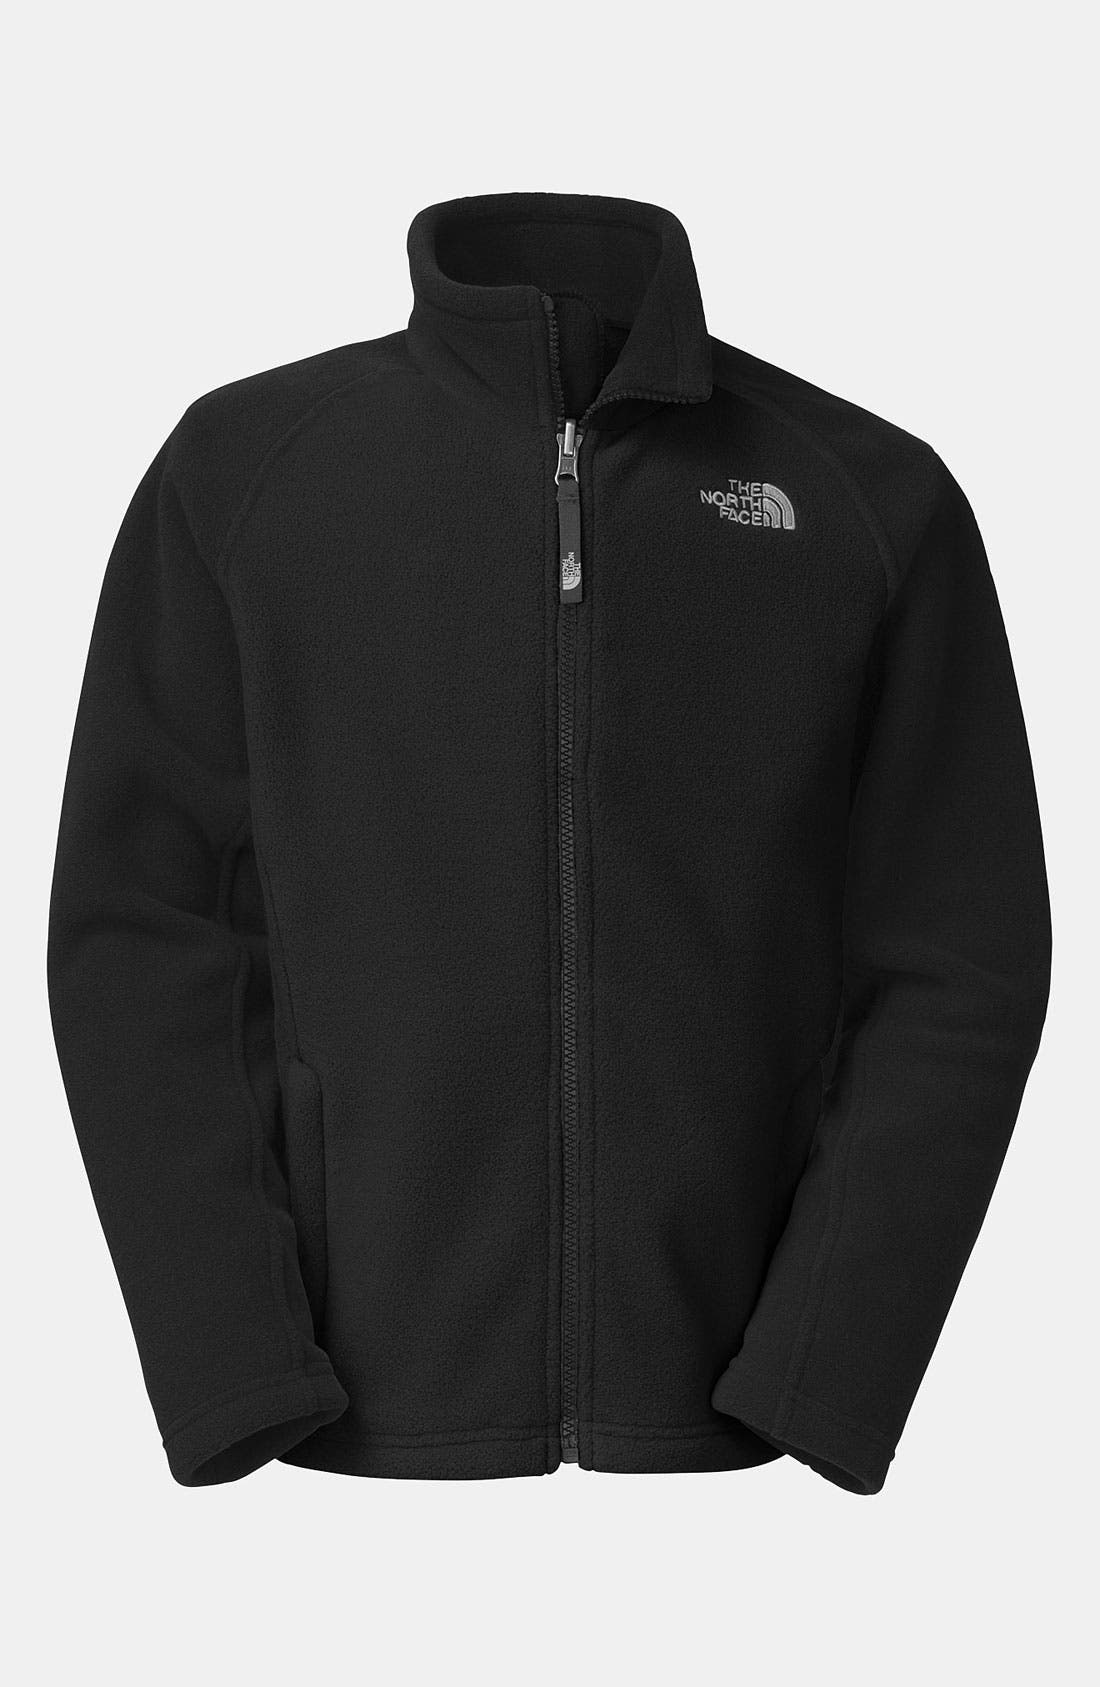 Alternate Image 1 Selected - The North Face 'Lil' RDT' Fleece Jacket (Big Boys)